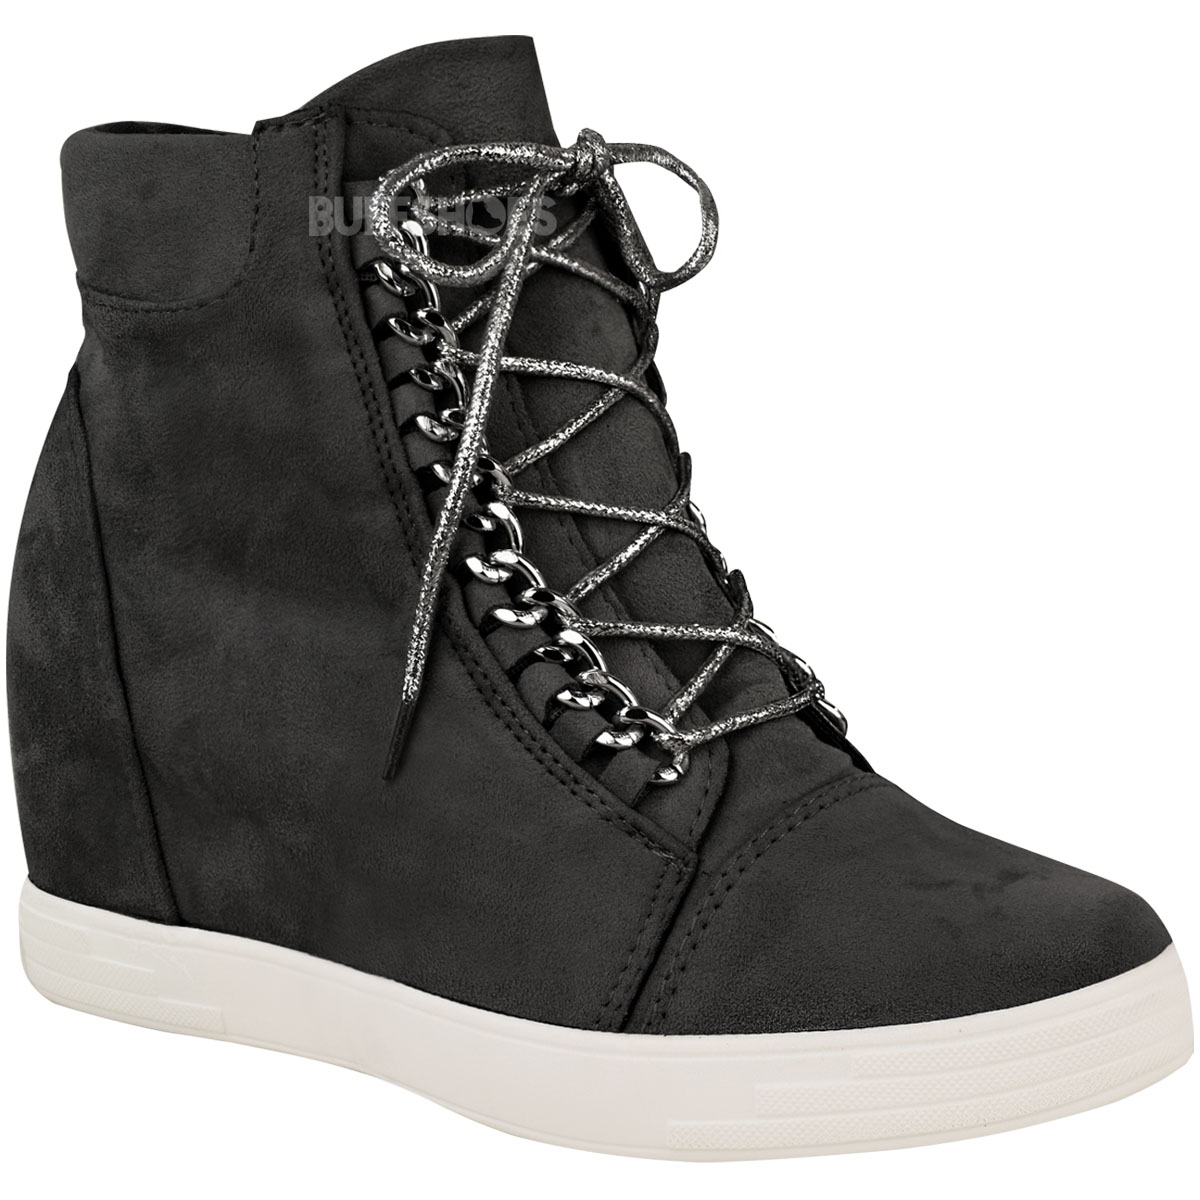 Womens Ladies Mid Heel Wedge High Top Ankle Trainers Lace Up ...